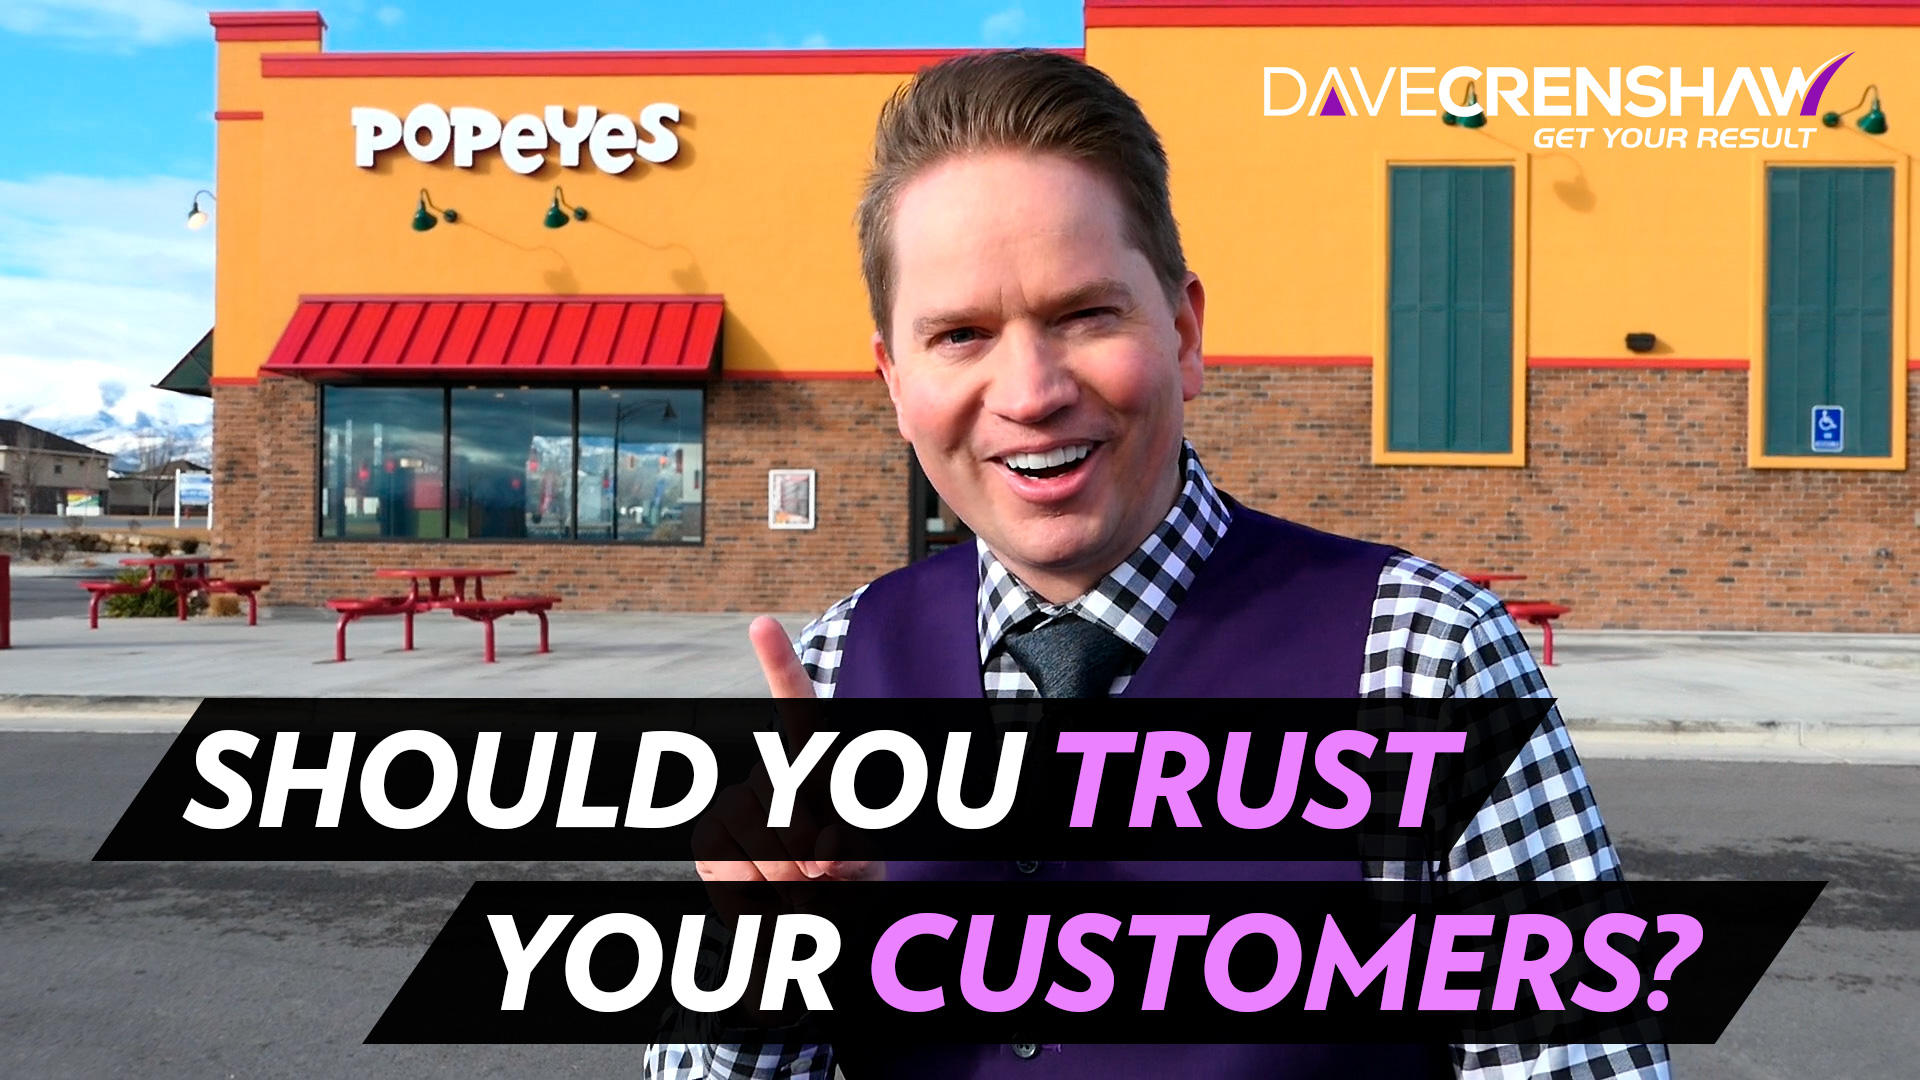 Should you trust your customers?